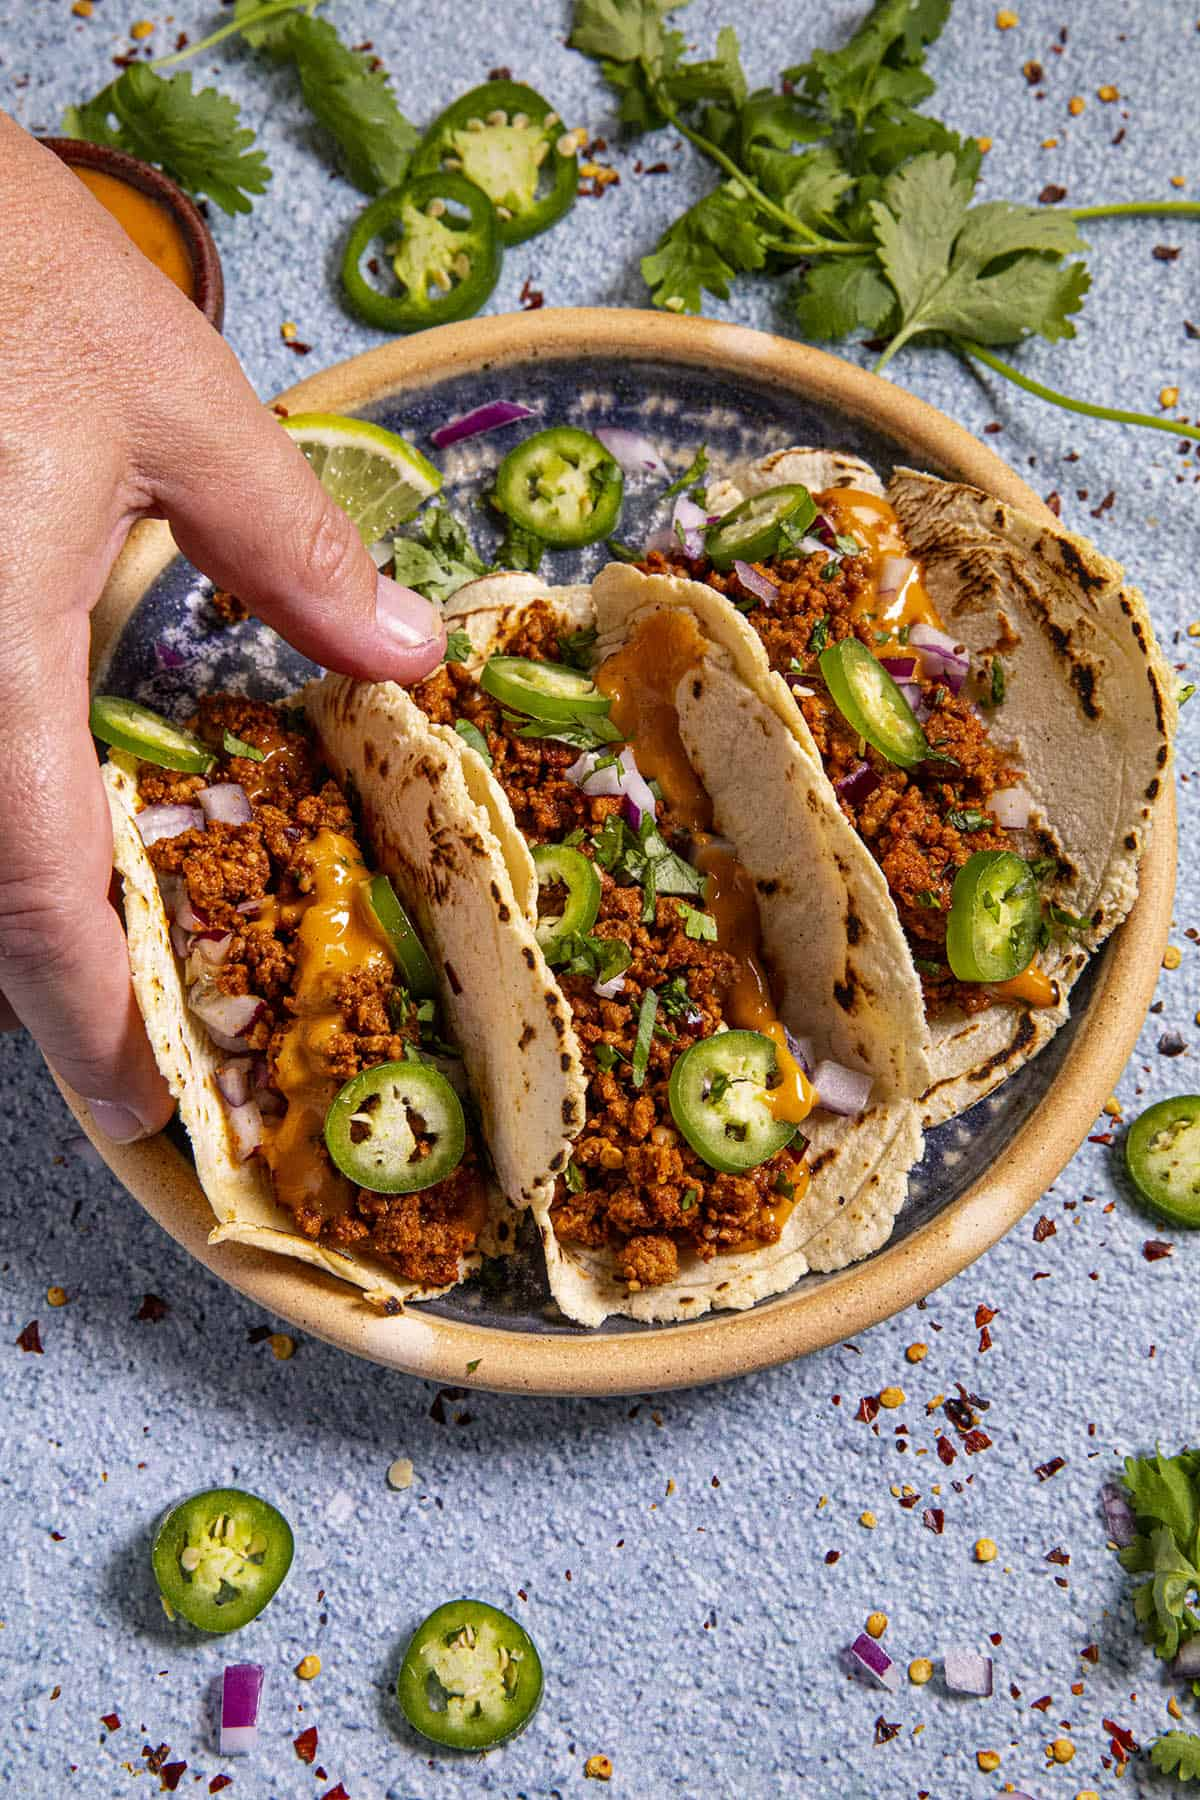 Mike serving up Mexican chorizo tacos